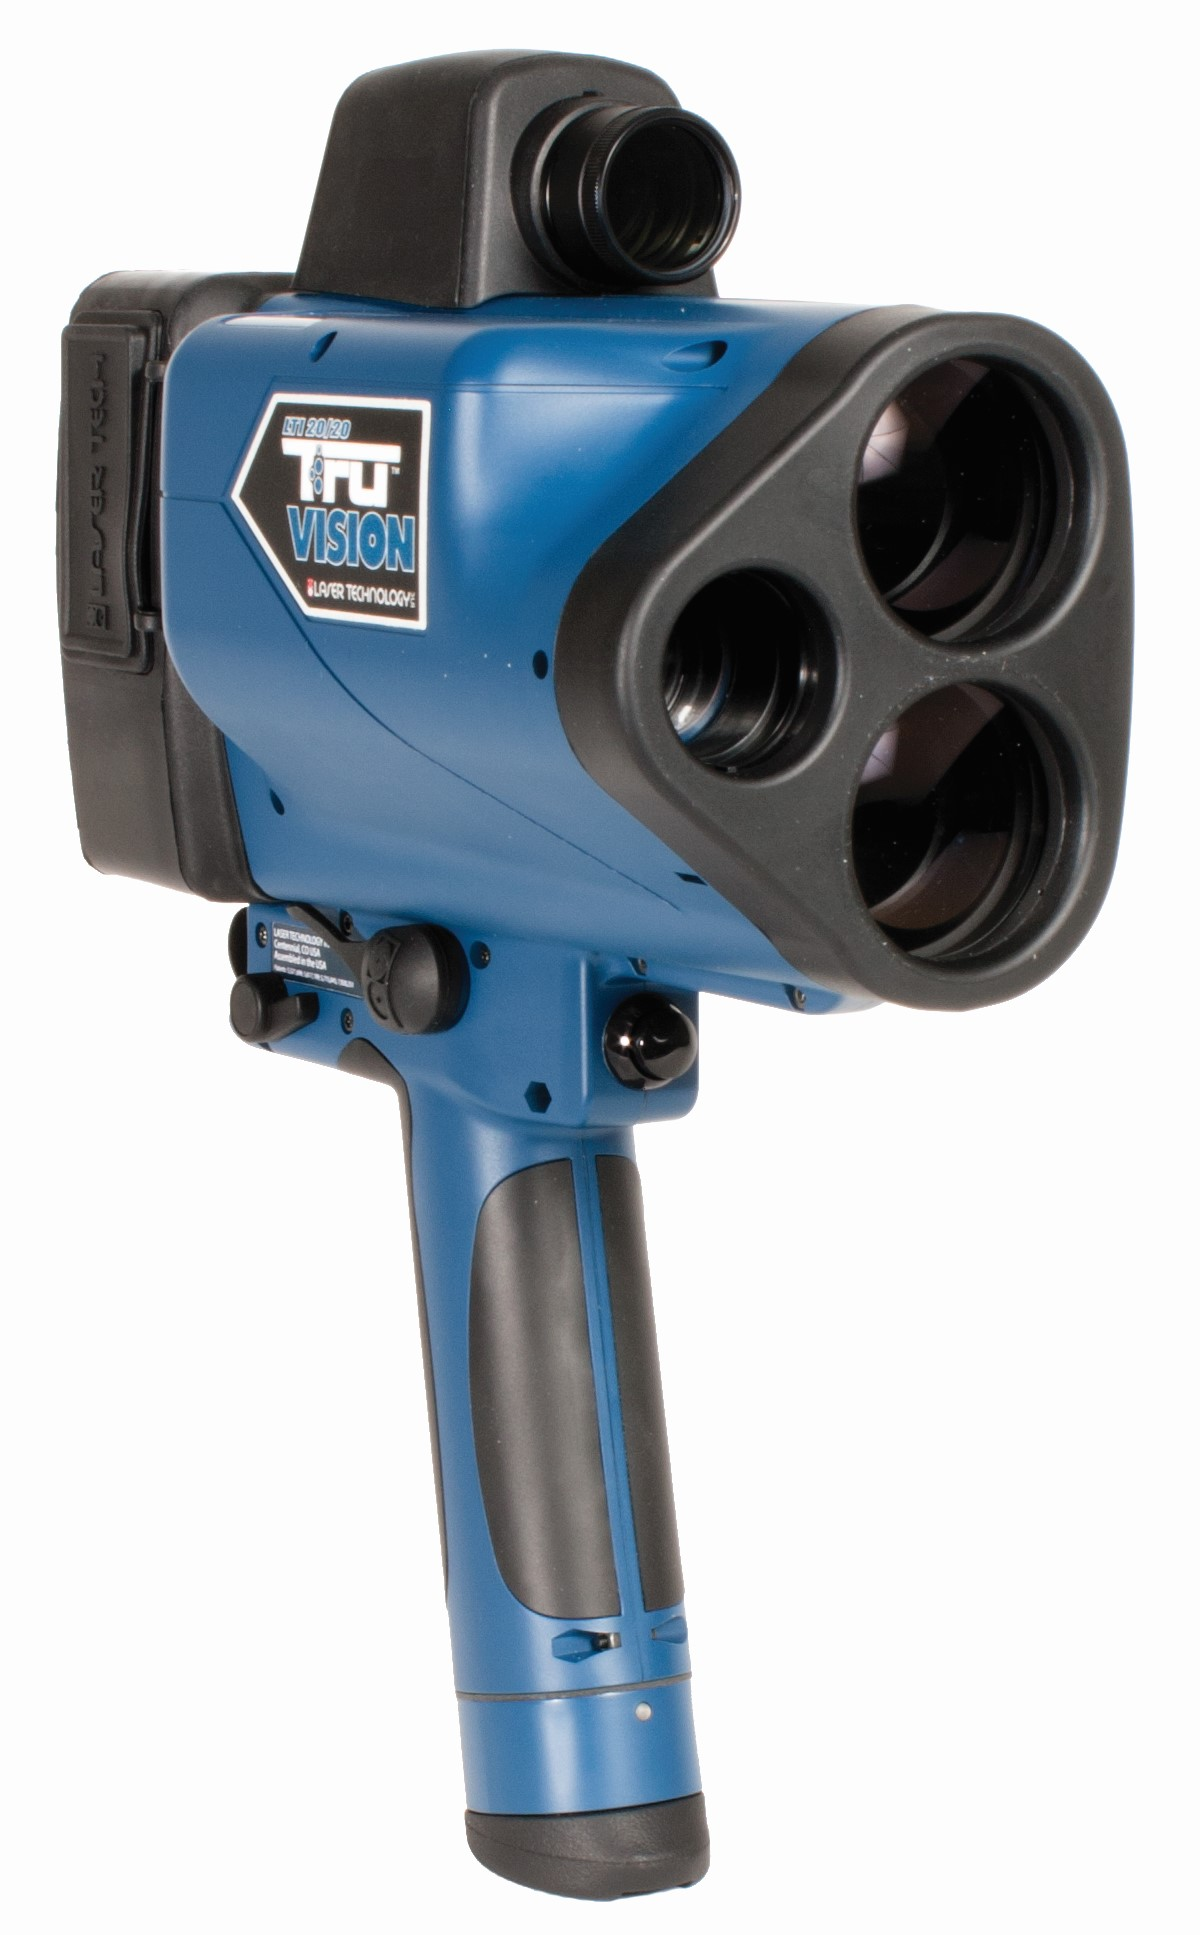 The new TruVision from Laser Technology Inc. (LTI) is designed to point and shoot so instead of...